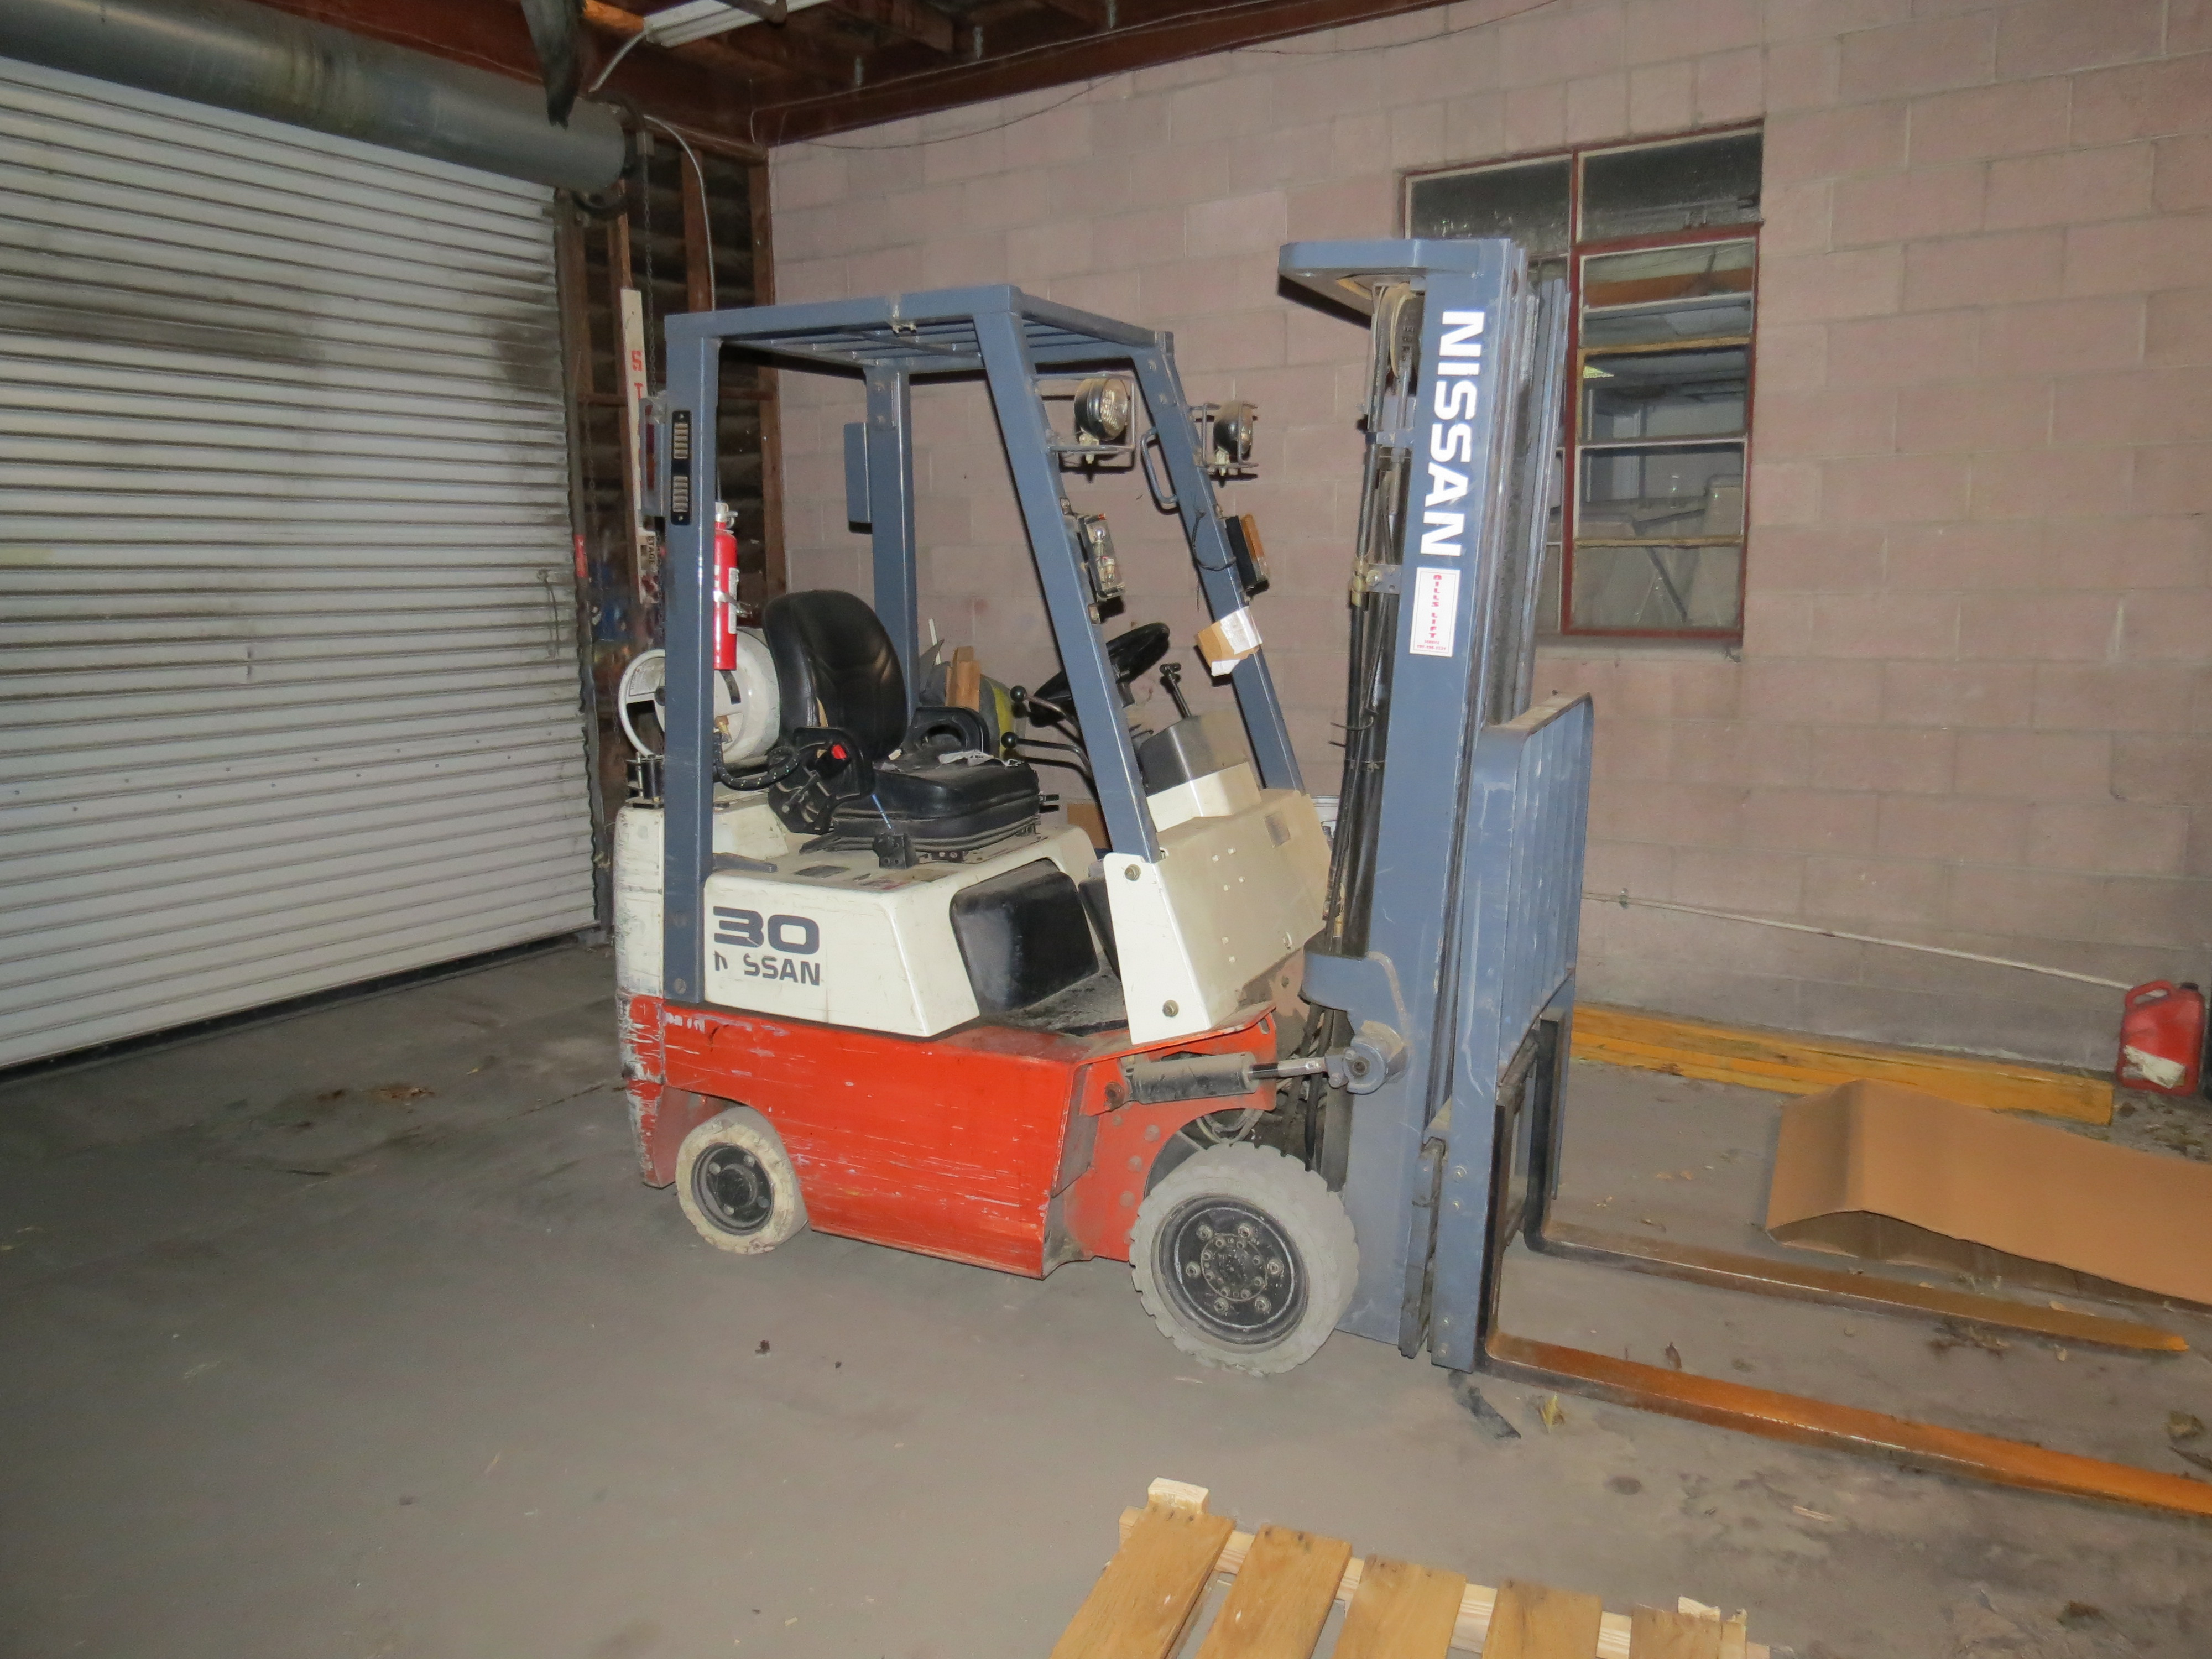 Nissan Model CPJ01A15PV 3-Stage 2500K Capacity LPG Forklift with Side Shift - Image 2 of 6